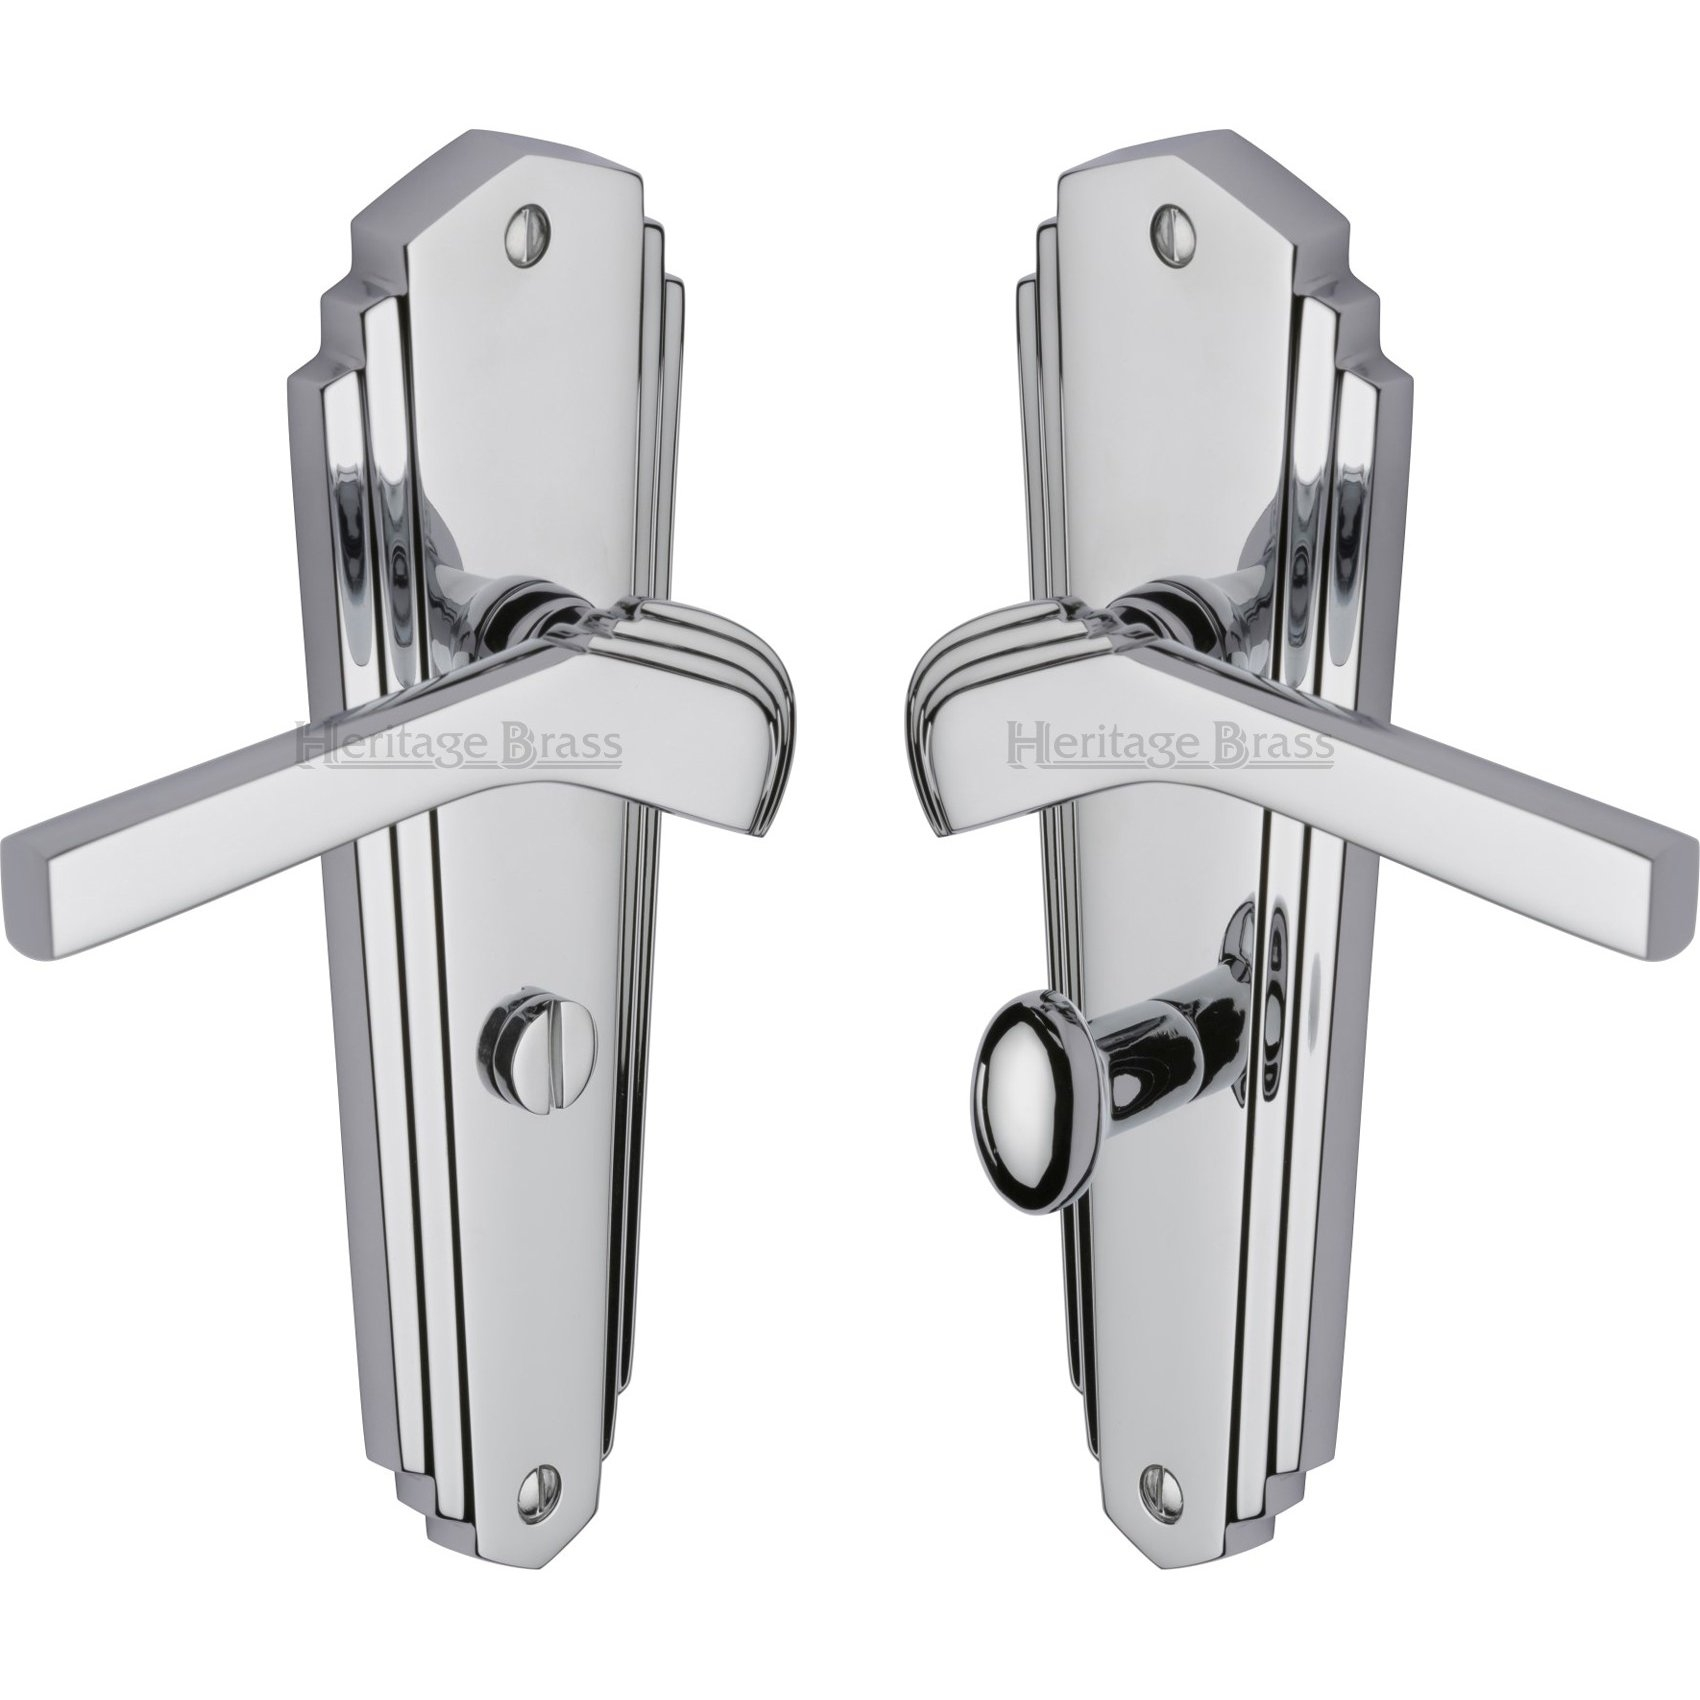 Permalink to Bathroom Door Handle With Lock